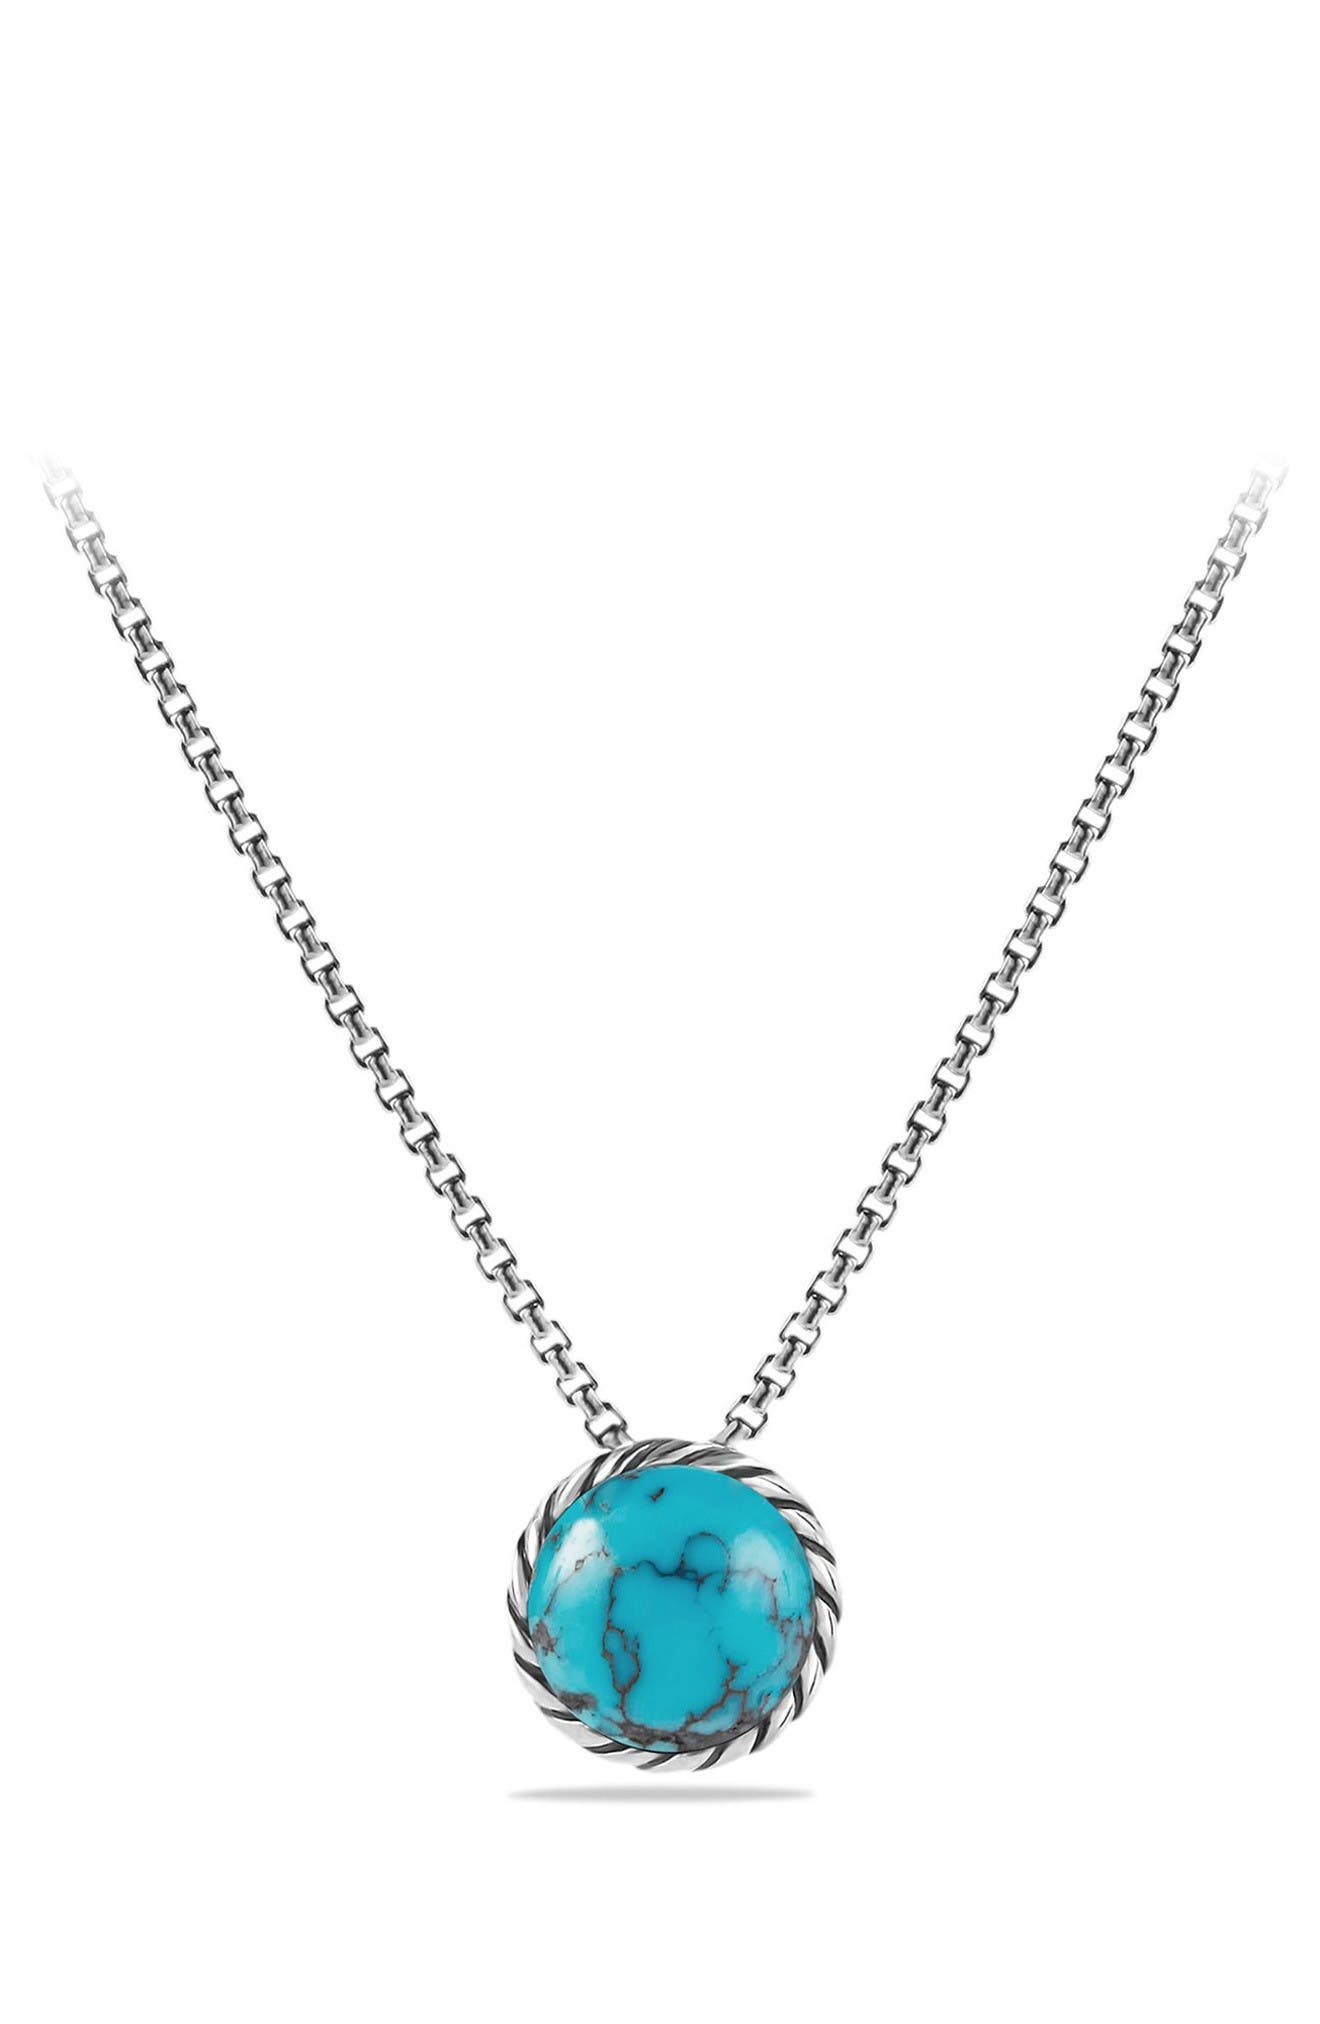 DAVID YURMAN Châtelaine Necklace with Gold Dome and 18K Gold